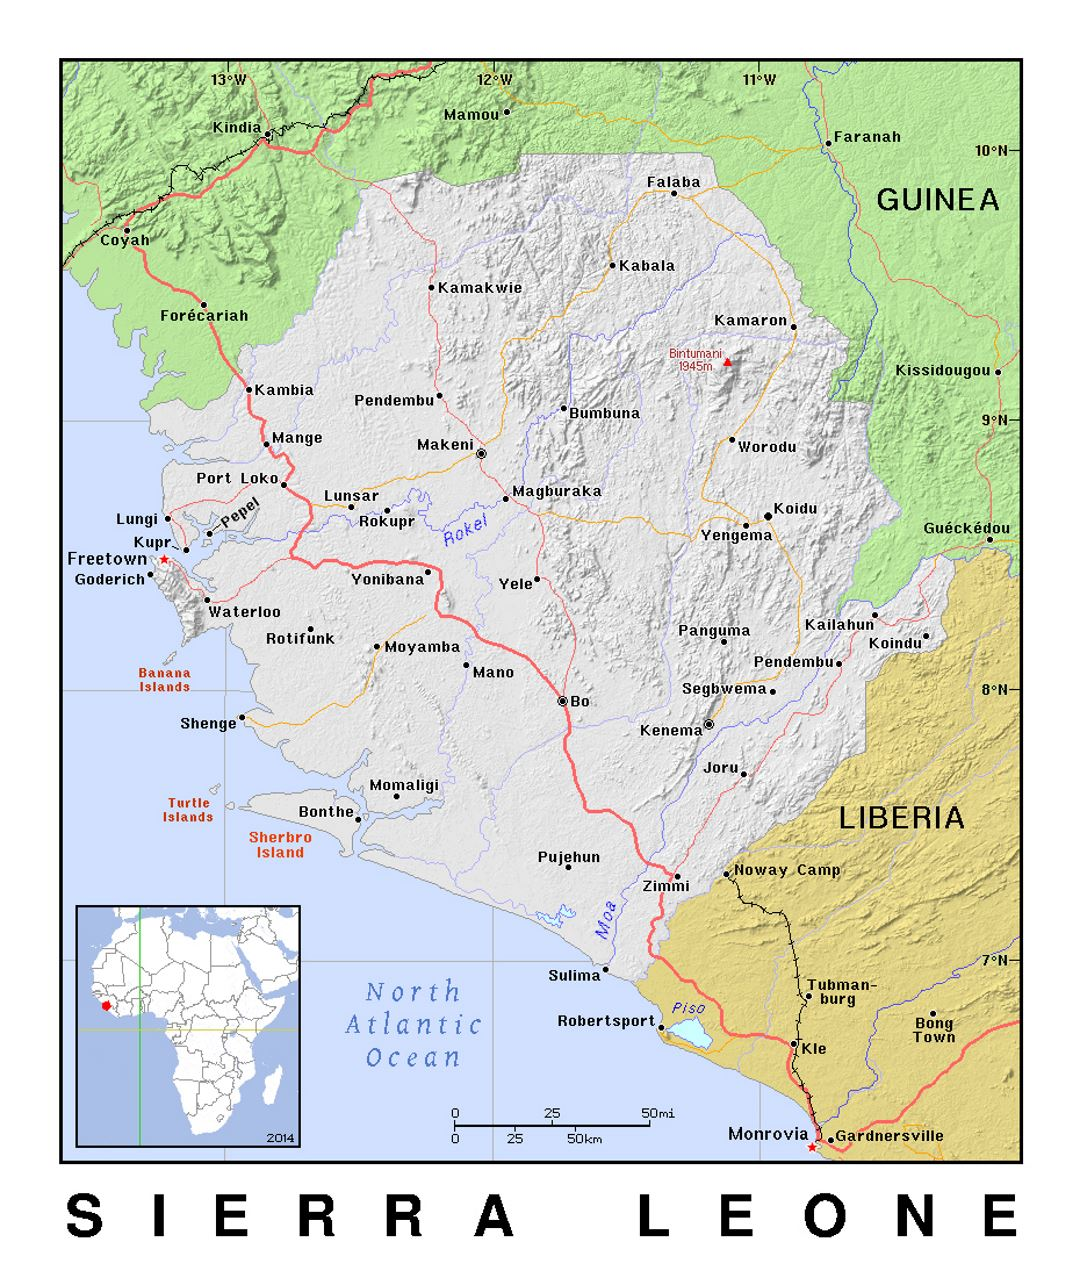 Detailed political map of Sierra Leone with relief